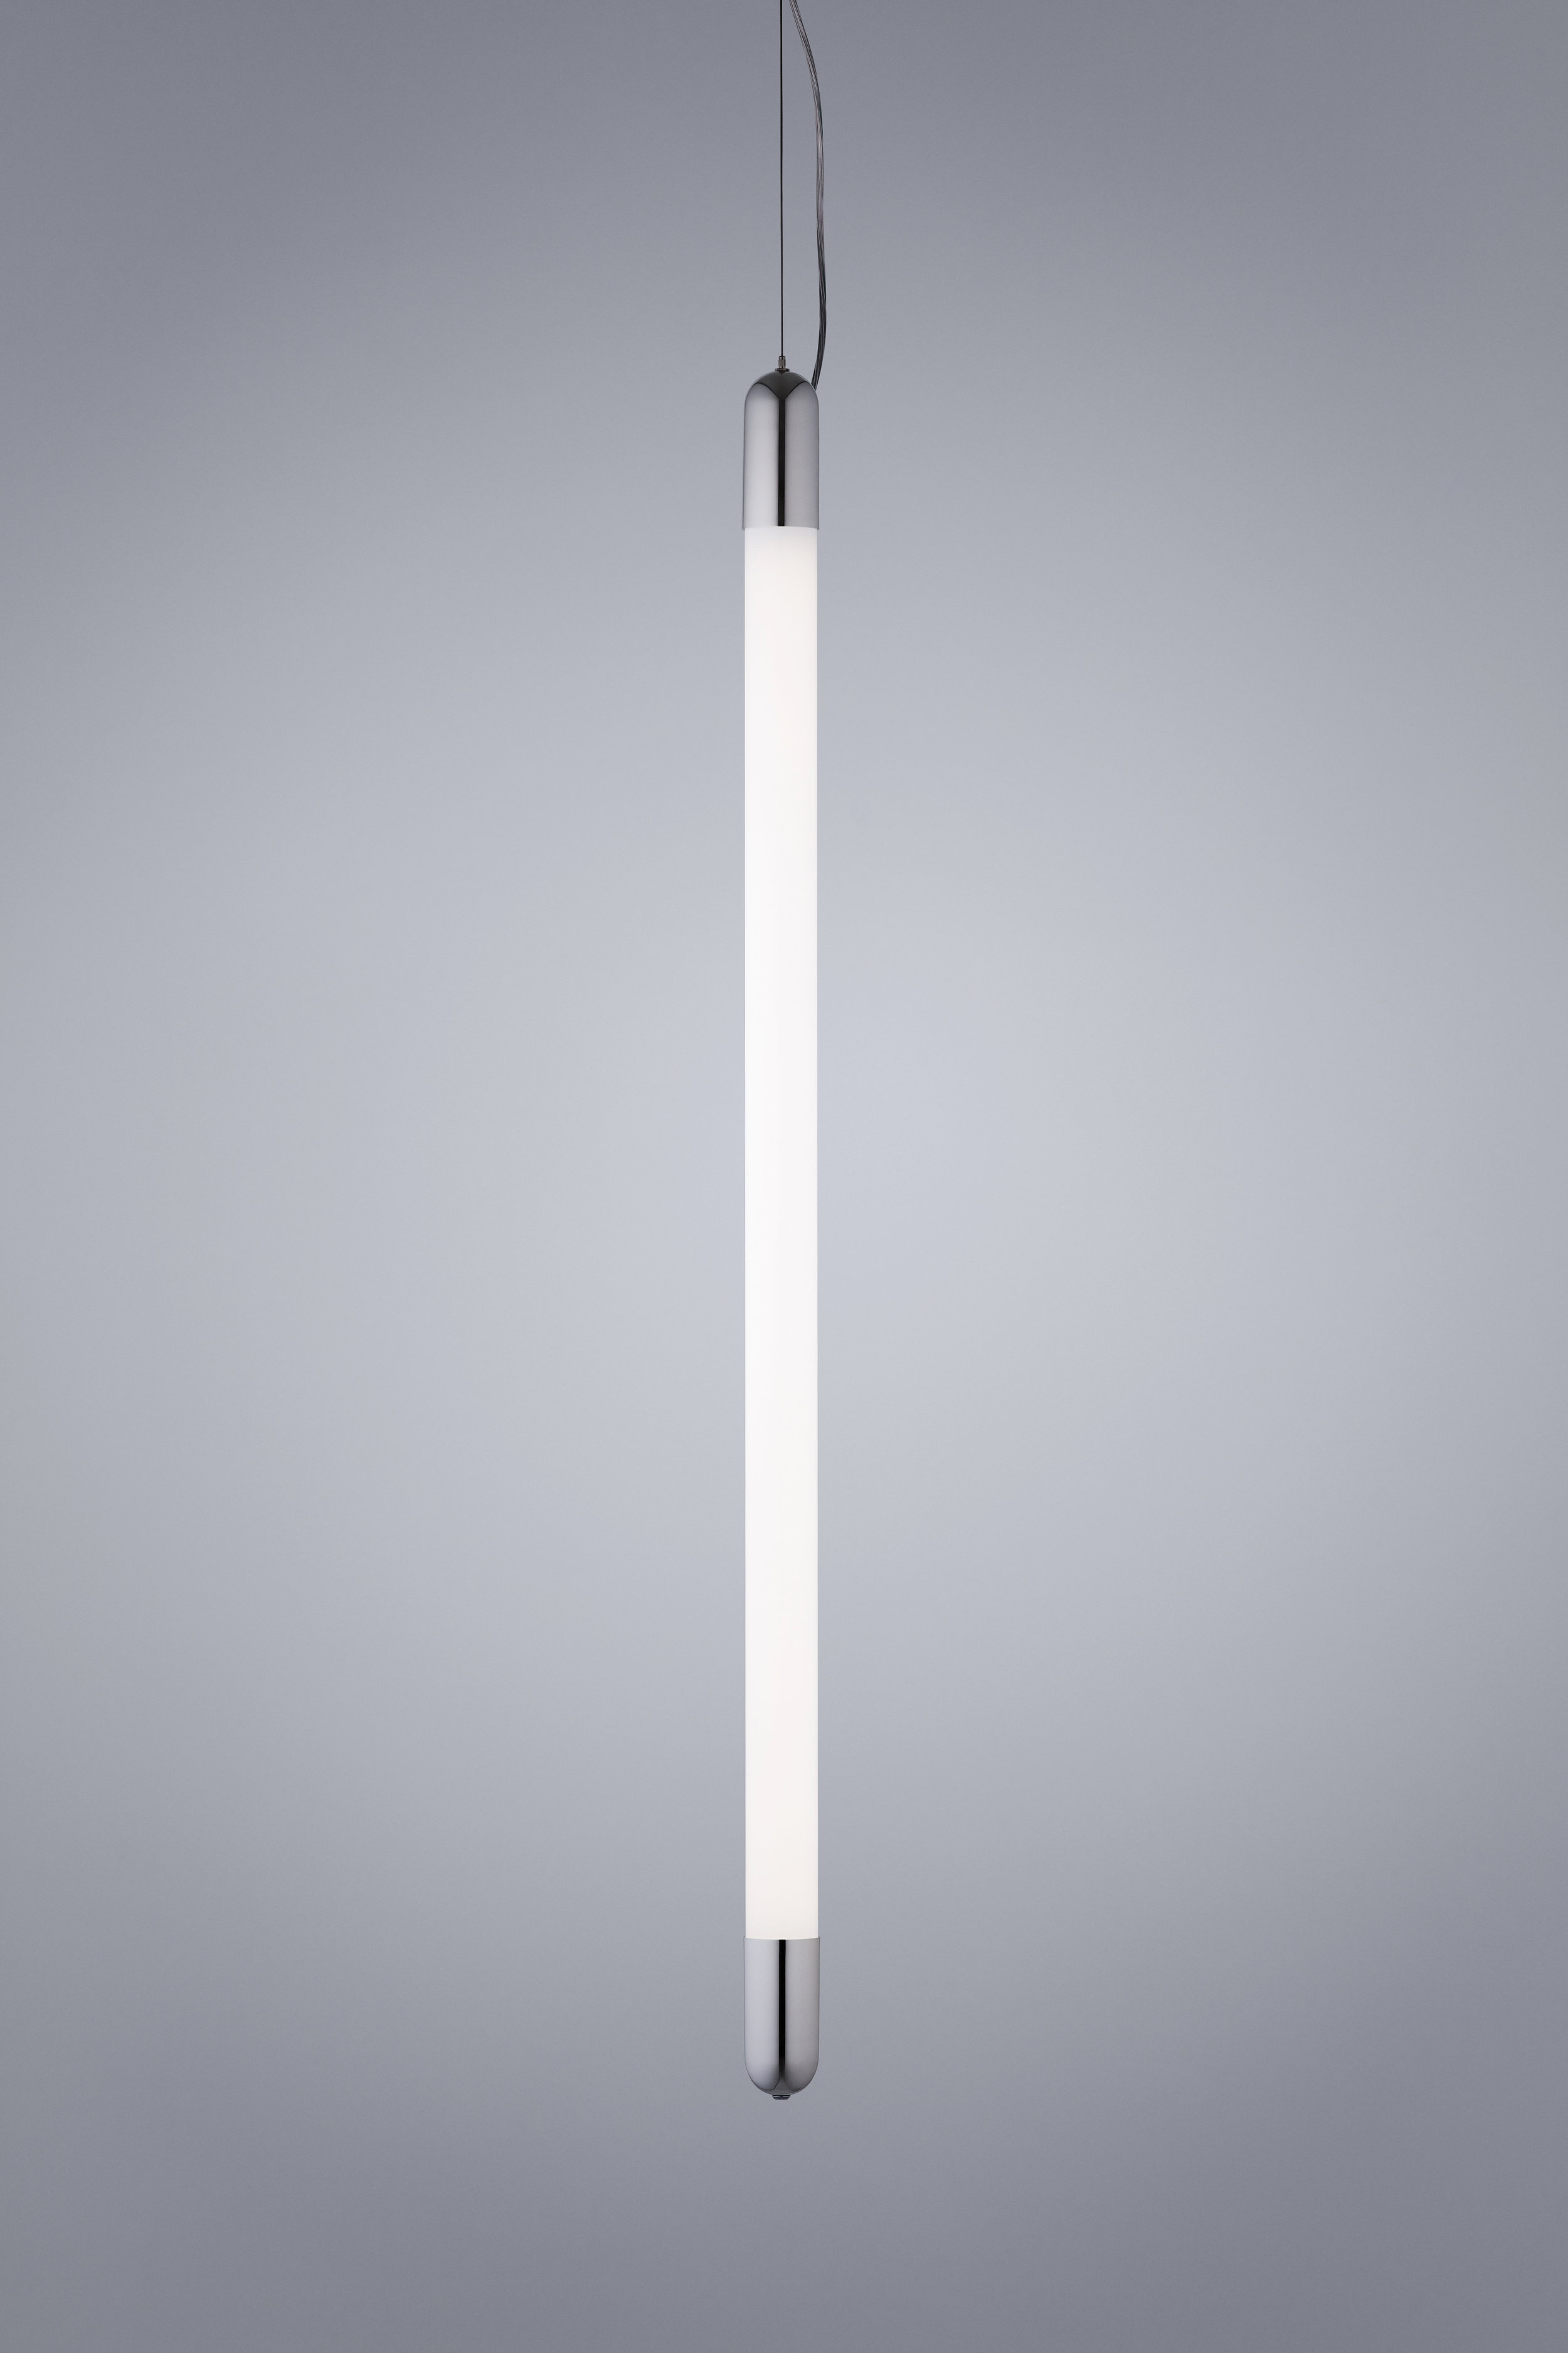 ISM Objects_Snag vertical long bright stainless steel_Pendant.jpg